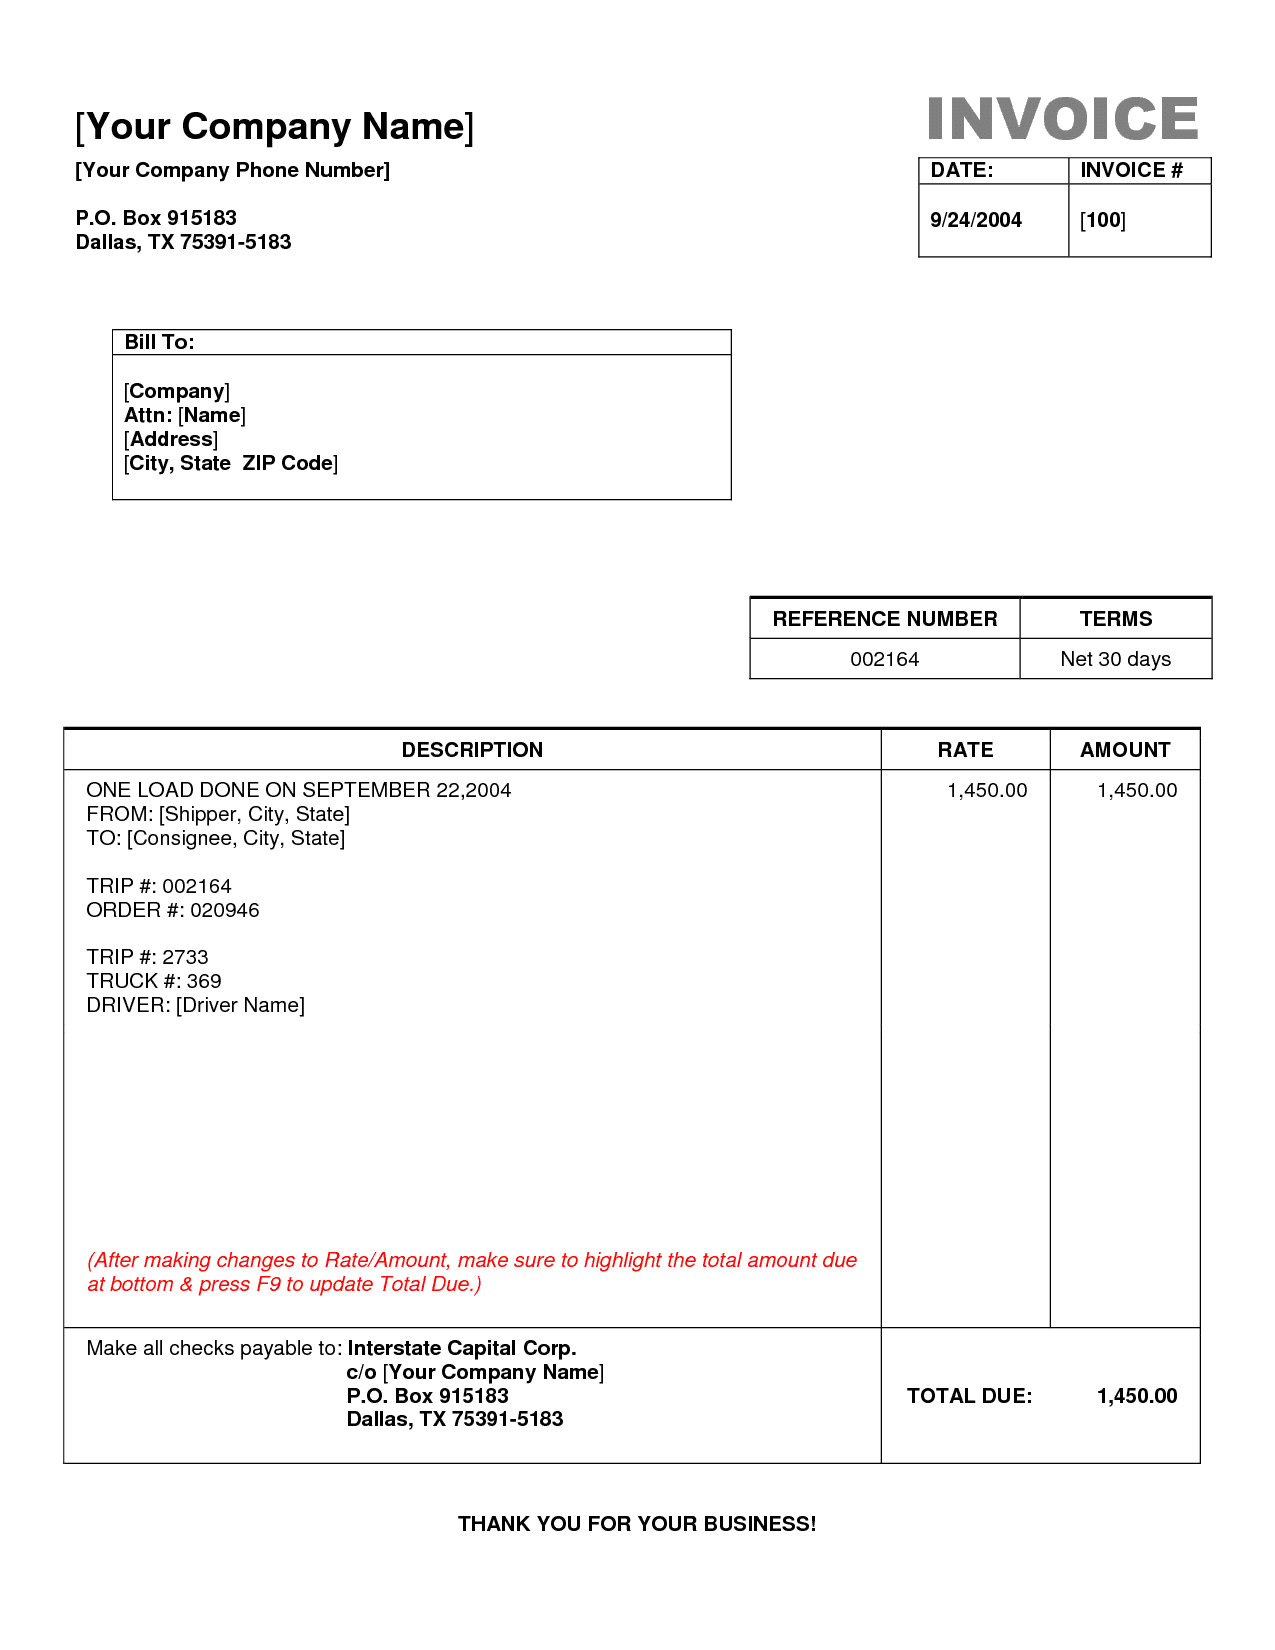 Sample Of Trucking Invoice And Free Trucking Invoice Template